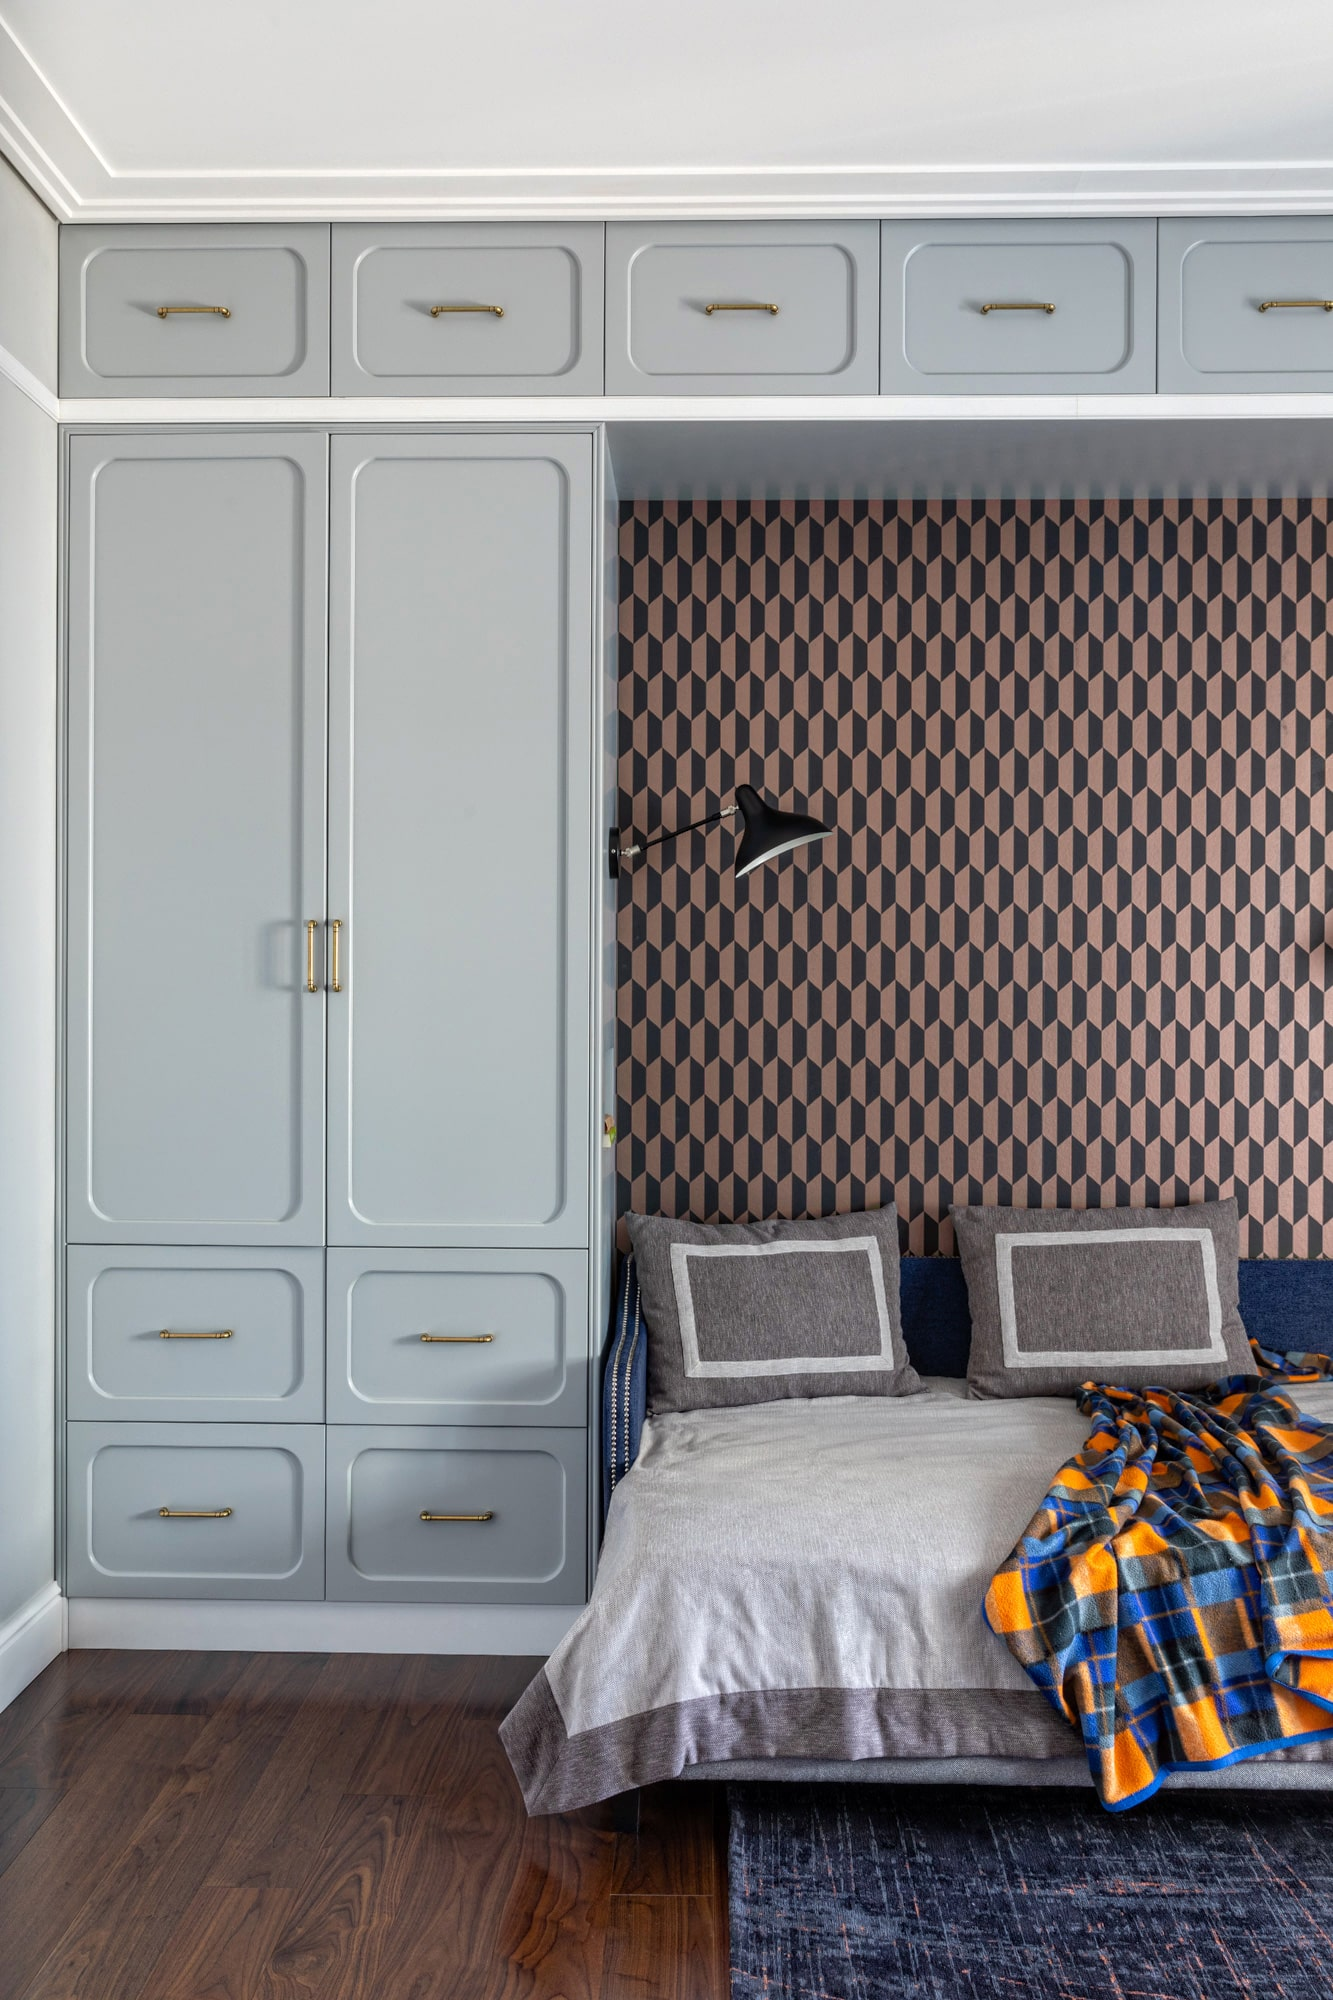 detail interior shot: teenager's bedroom, patterned wallpaper, grey wardrobe, a small sofa bed